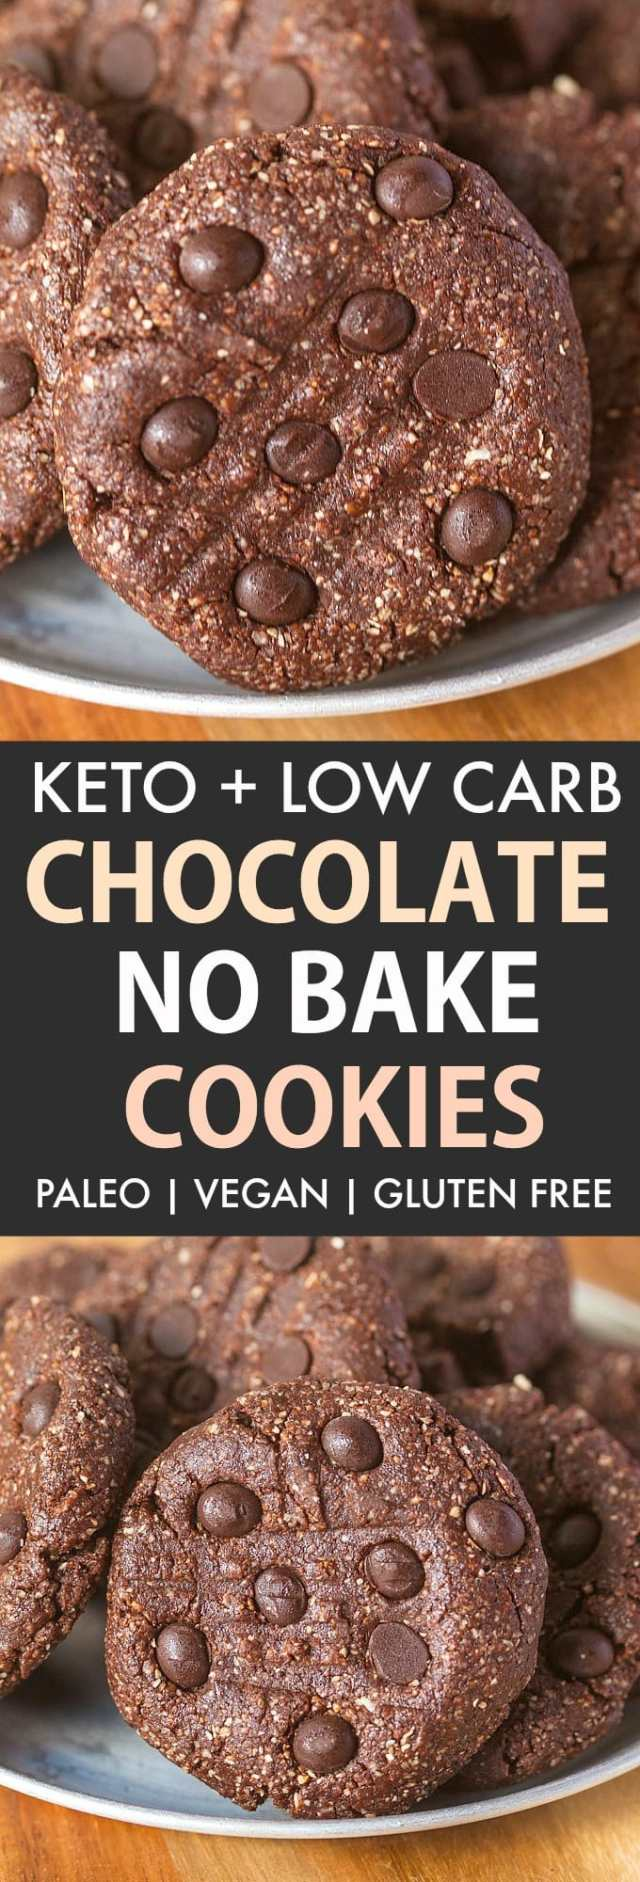 Keto chocolate no bake cookies